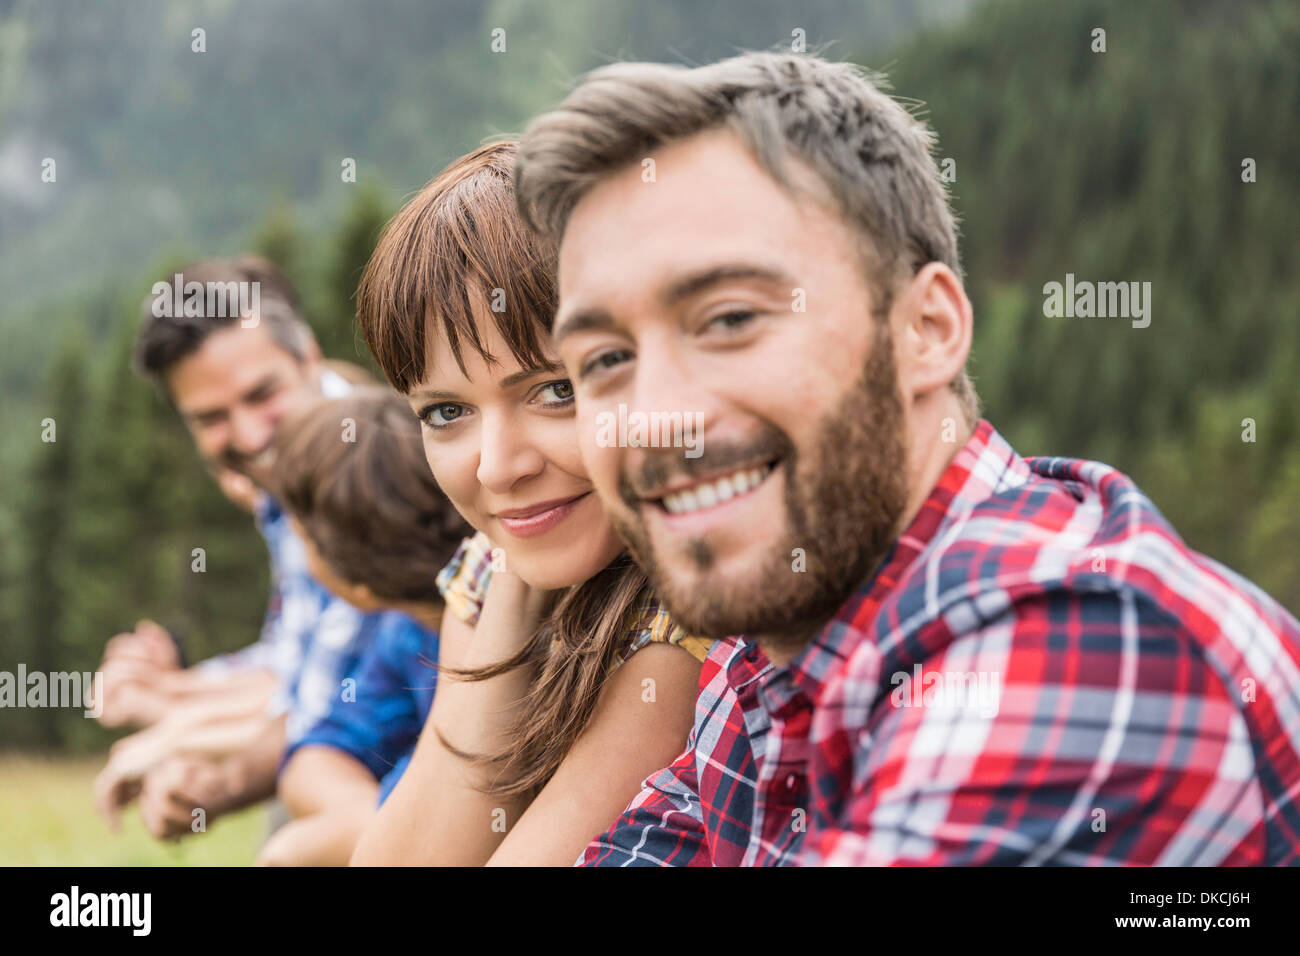 Friends in holiday snapshot - Stock Image